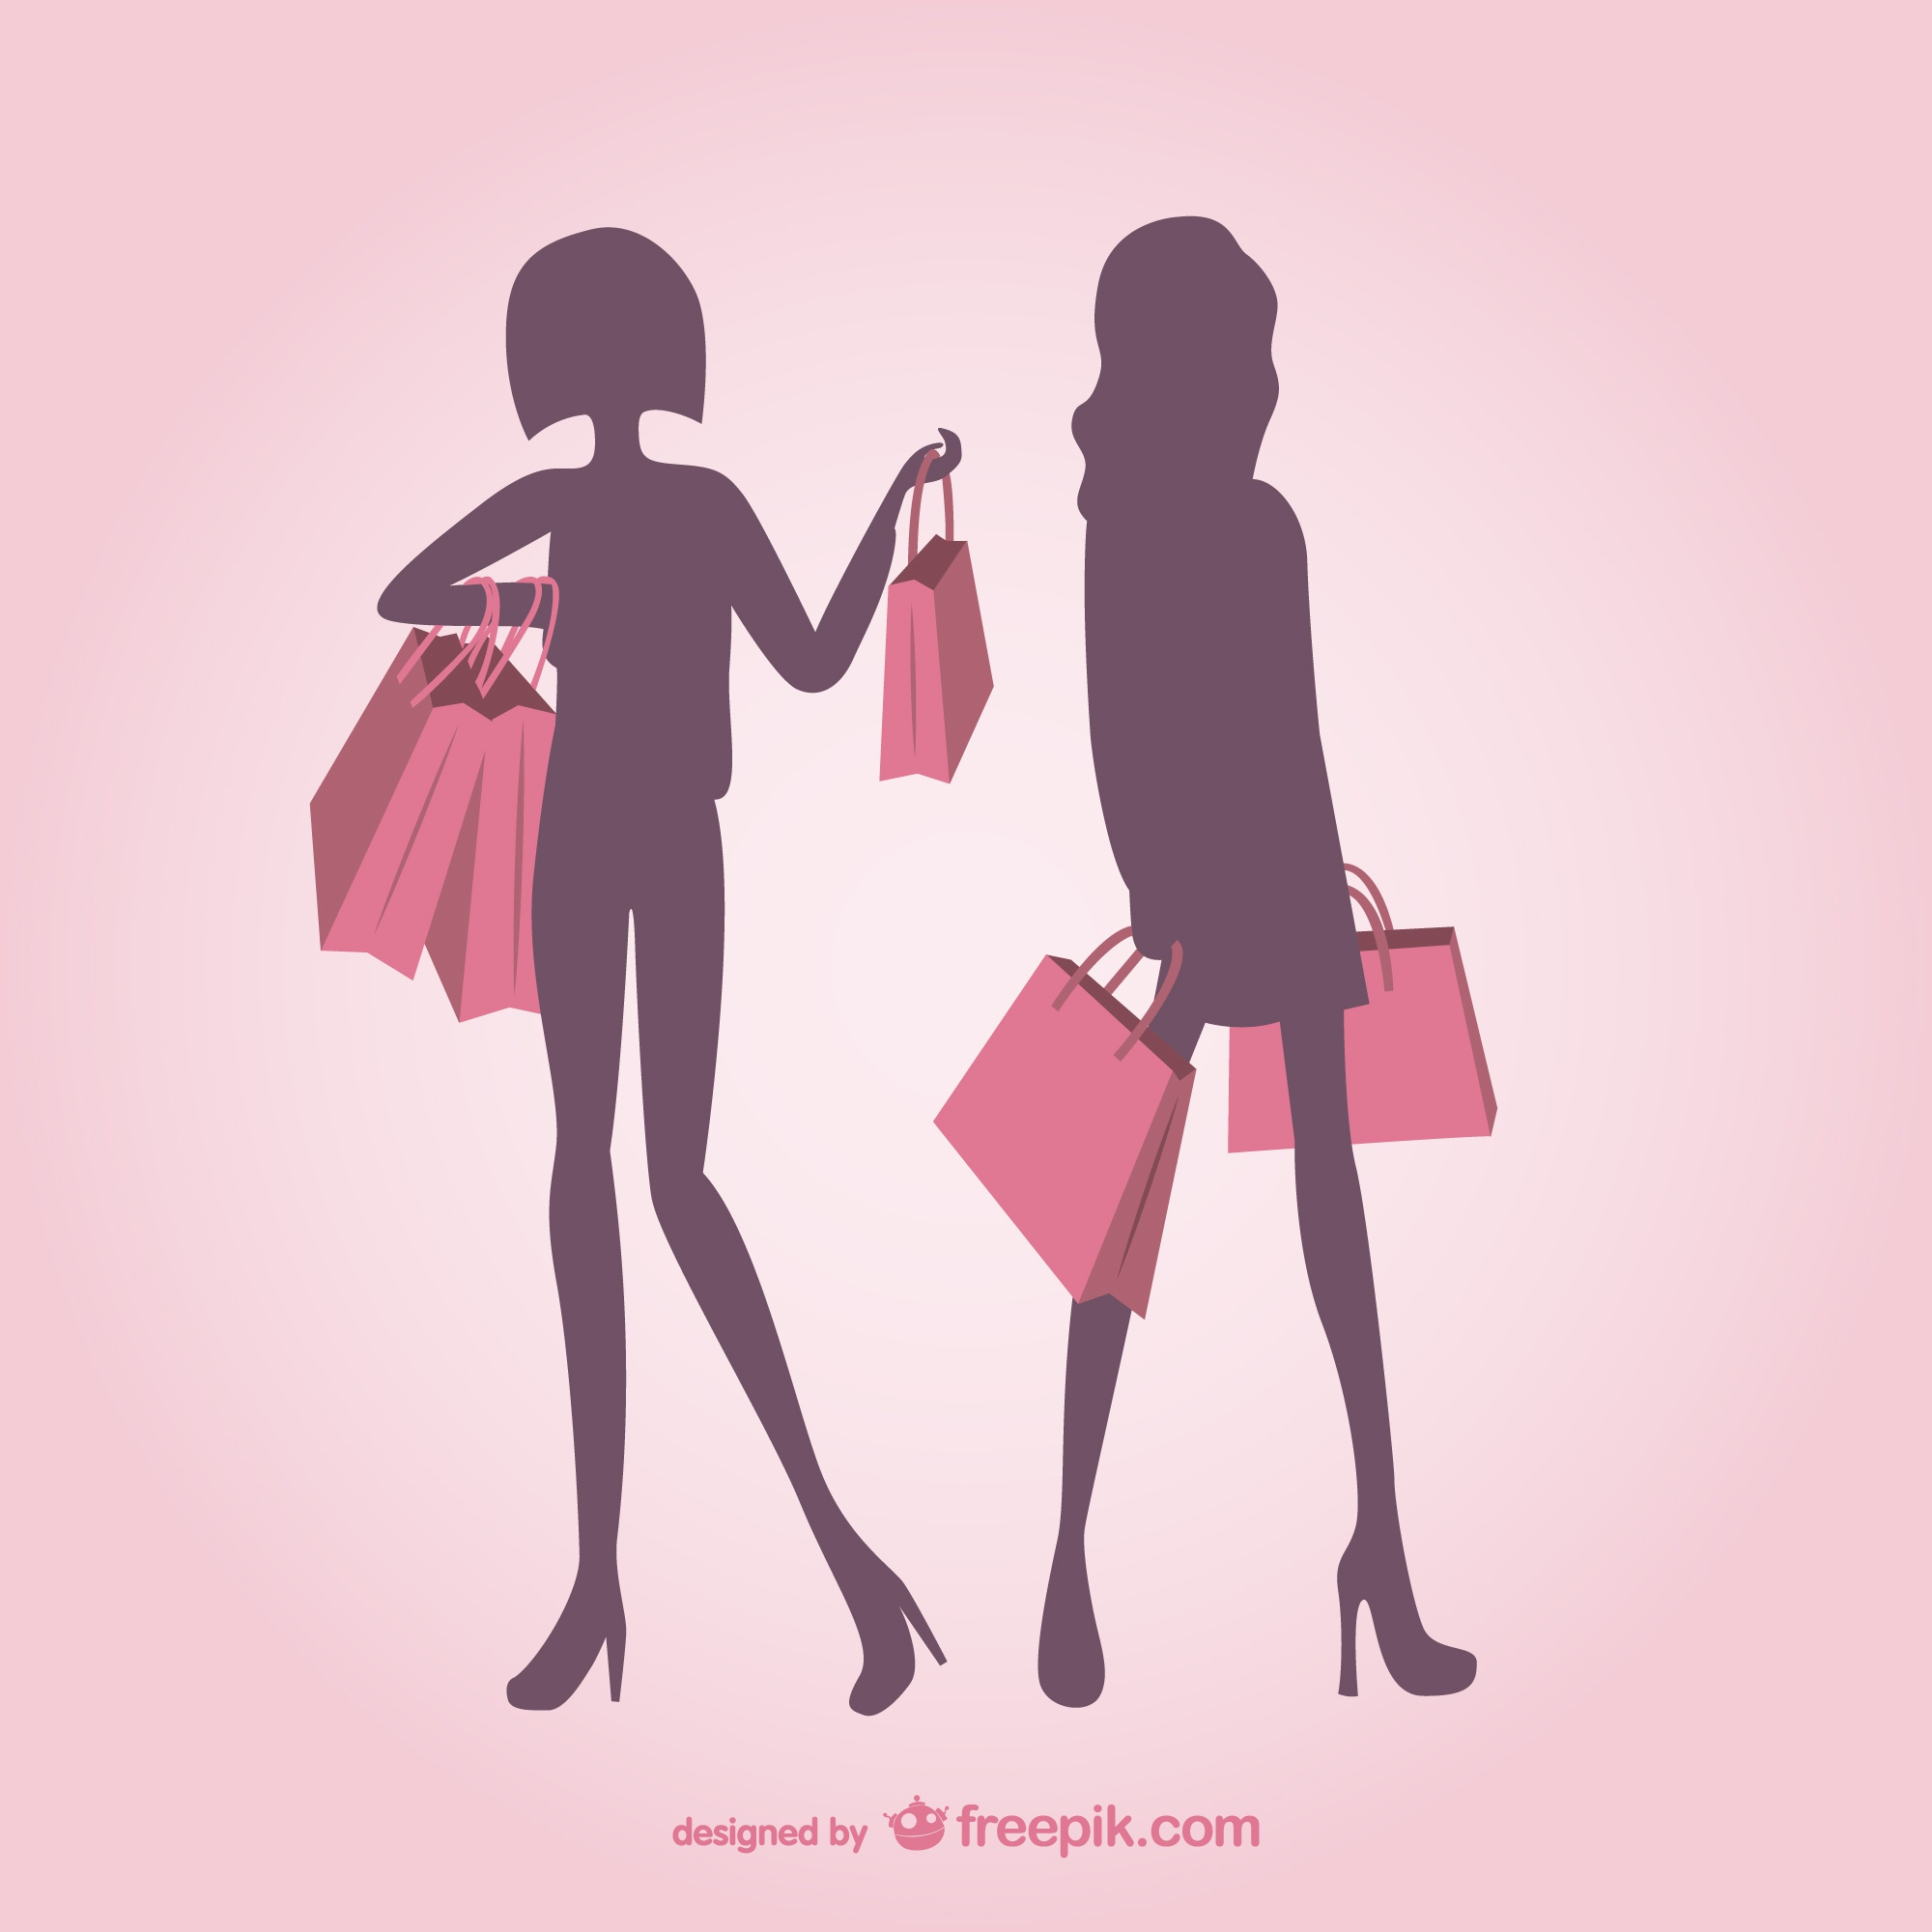 Fashionable girls silhouettes